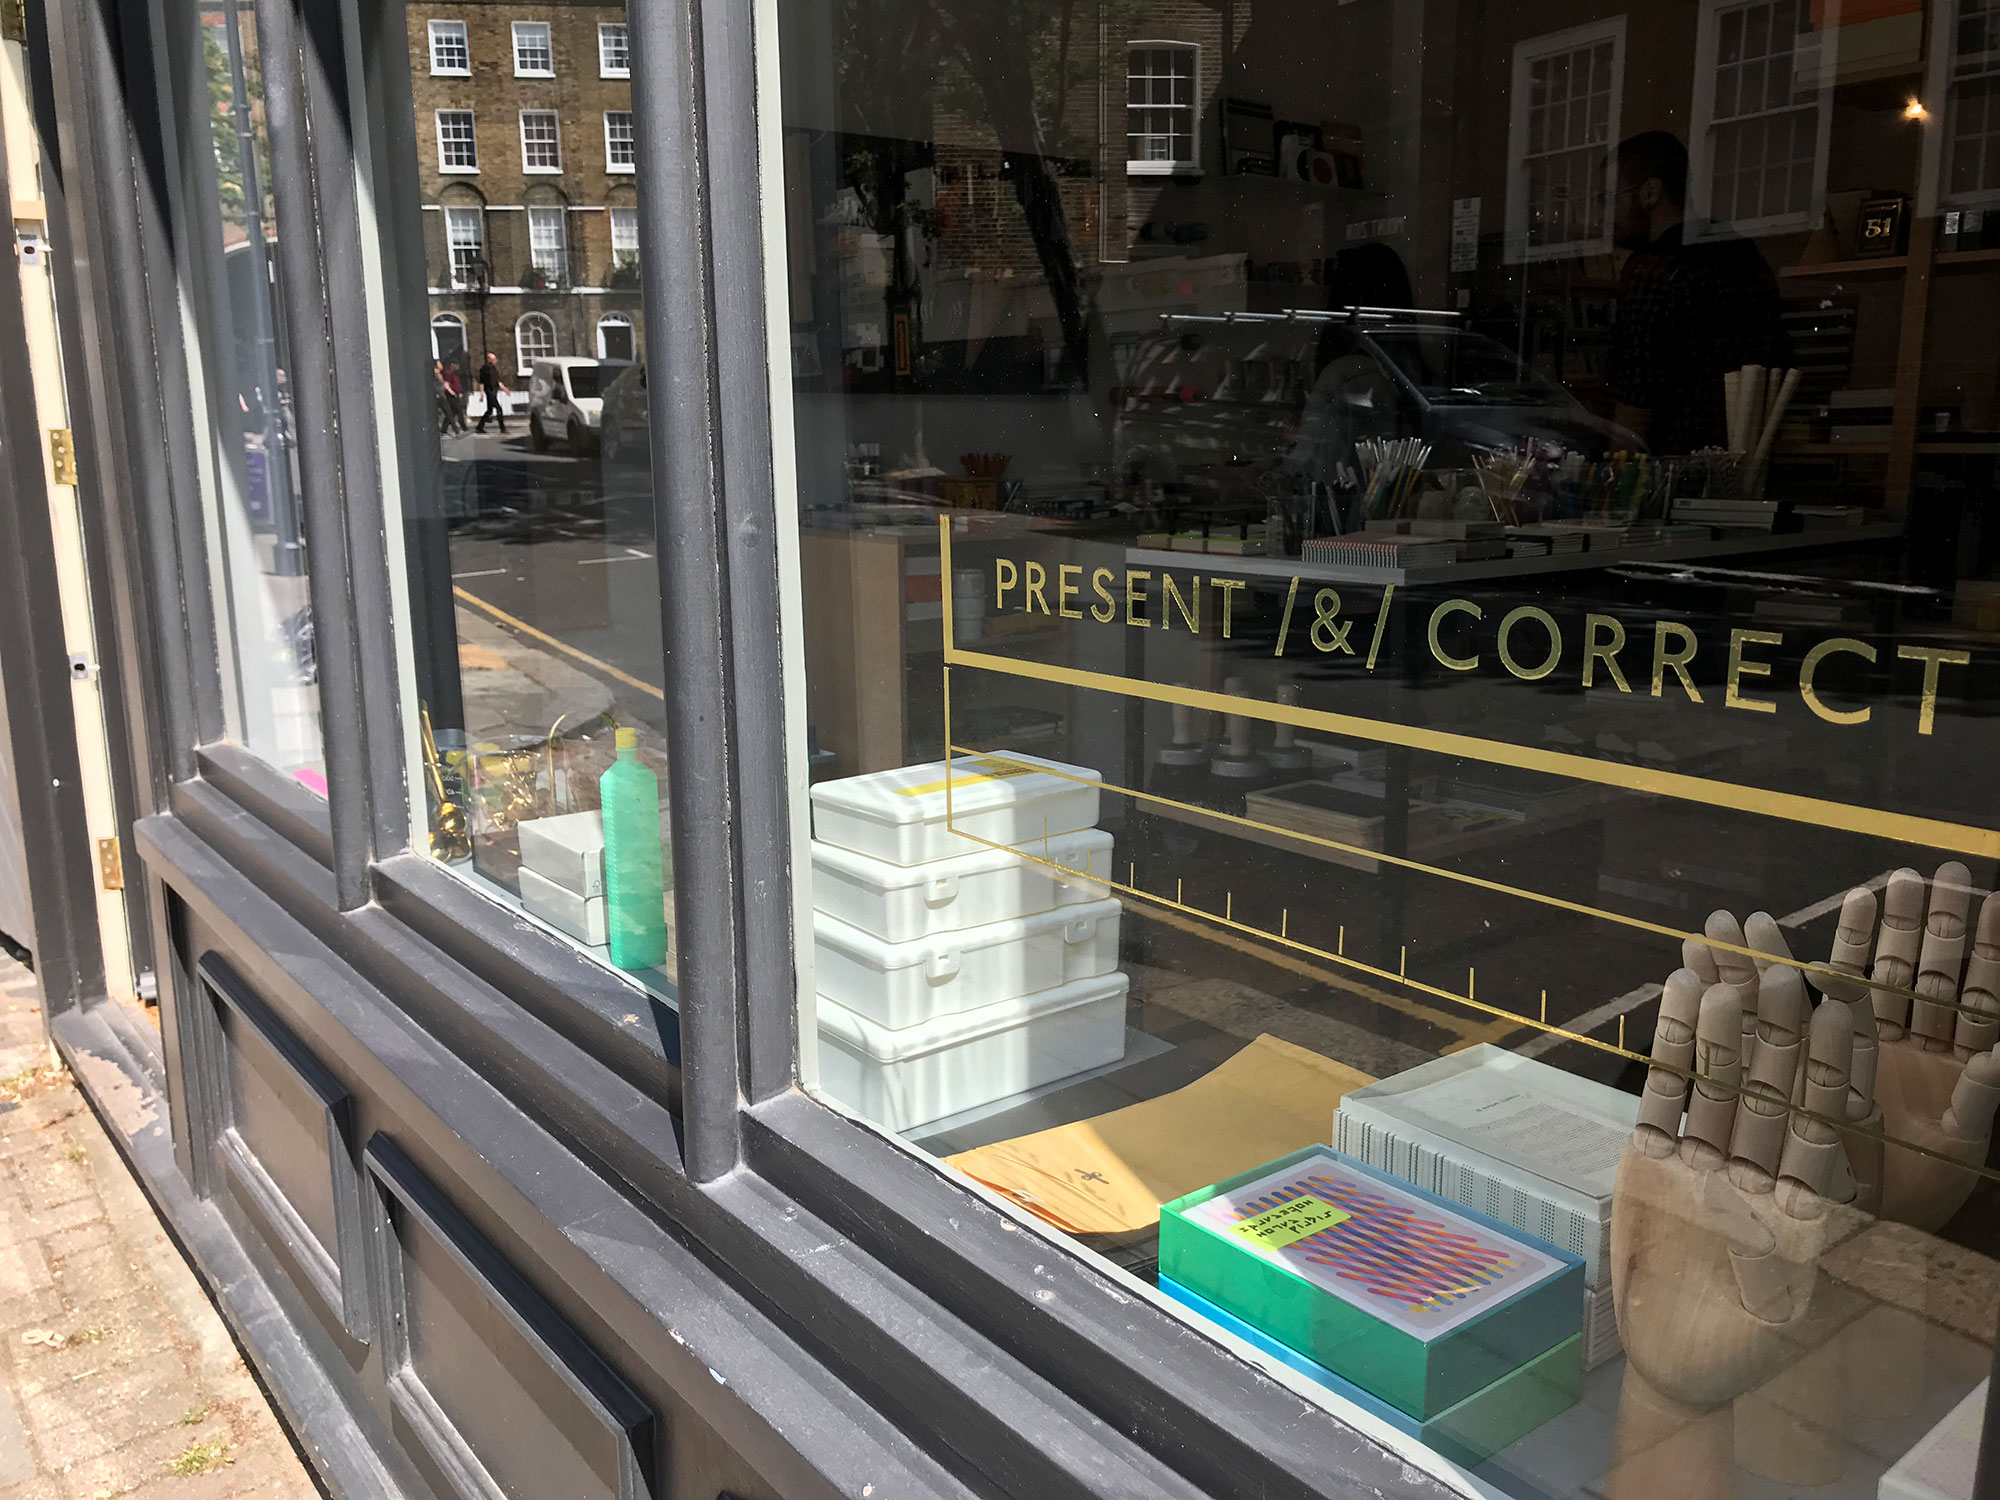 Present & Correct shop on Arlington Way